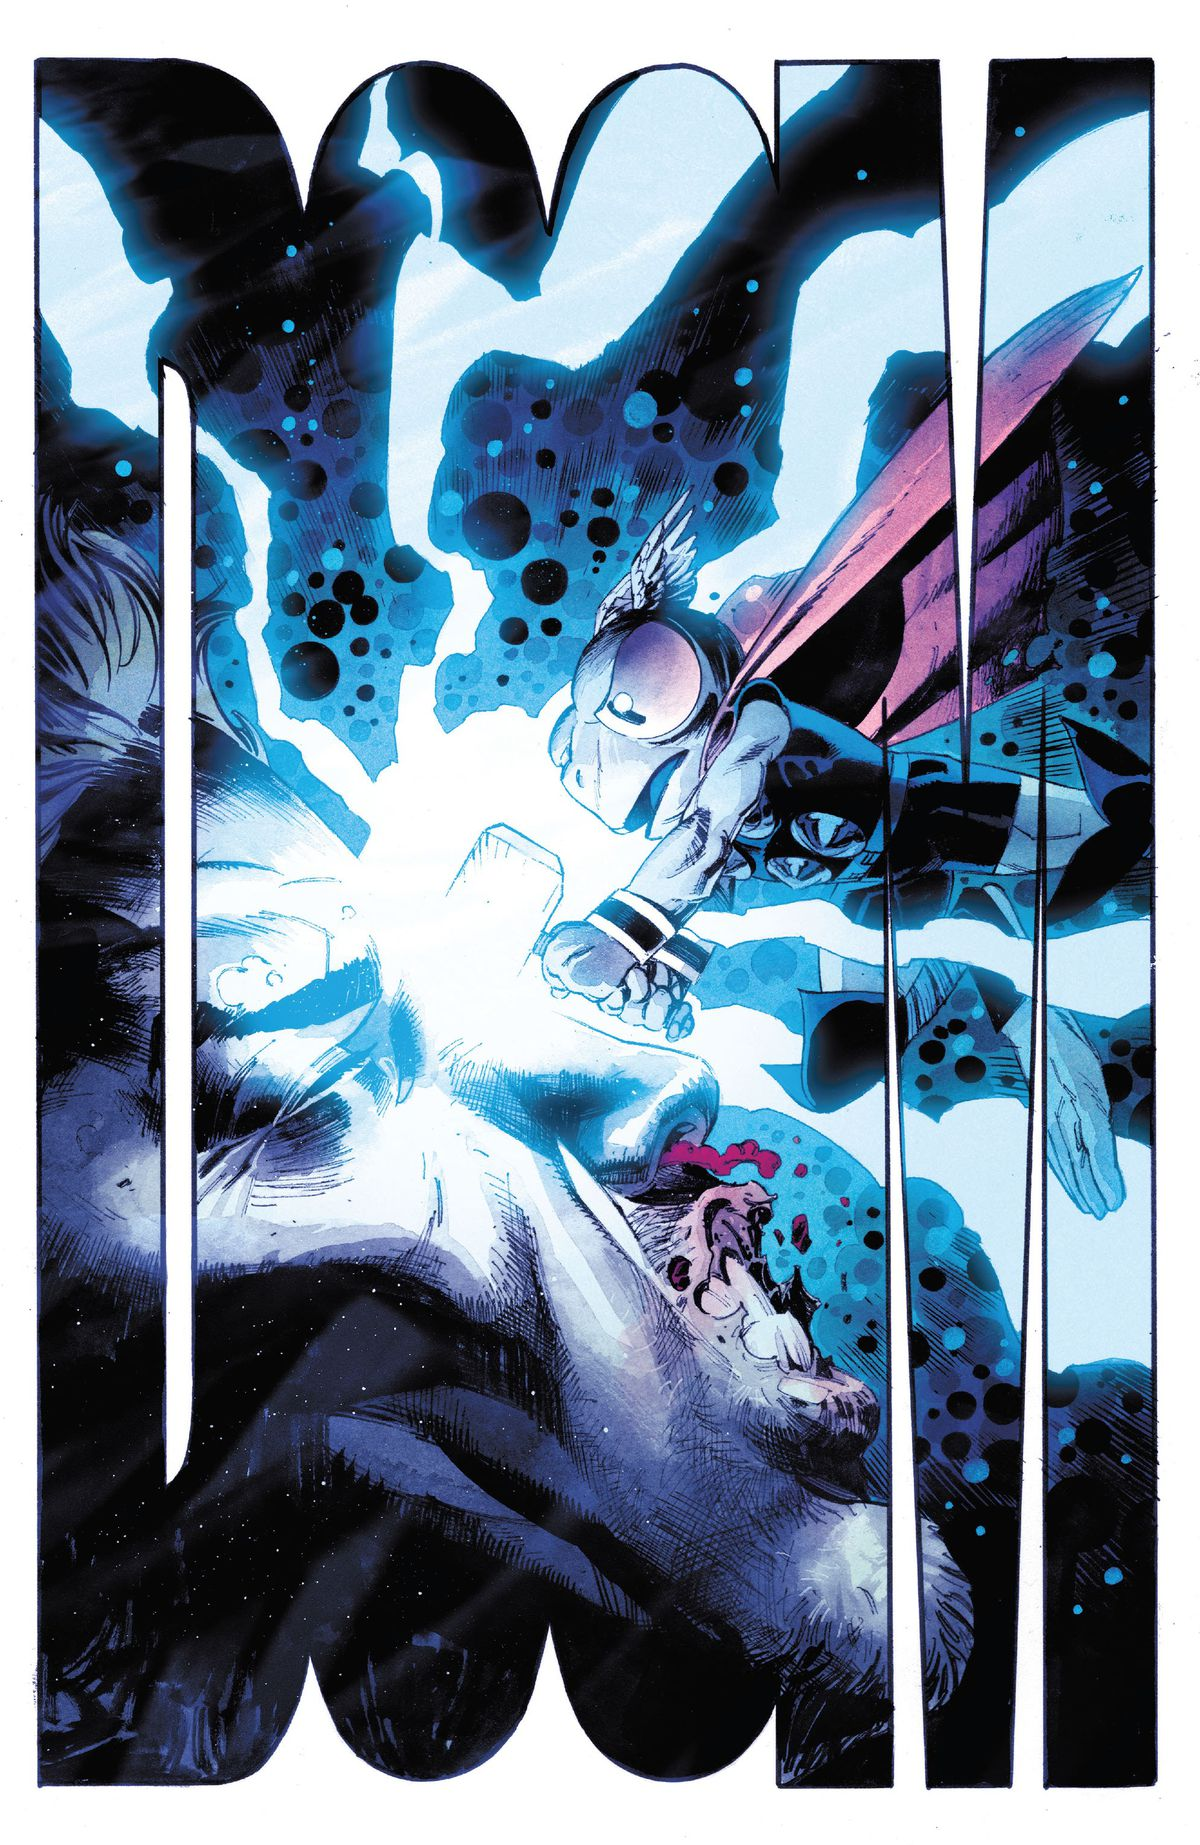 Frog Thor slams his hammer, Frogjolnir, into the bloodied face of Donald Blake with a giant DOOM that takes up the entire page in Thor #12, Marvel Comics (2021).